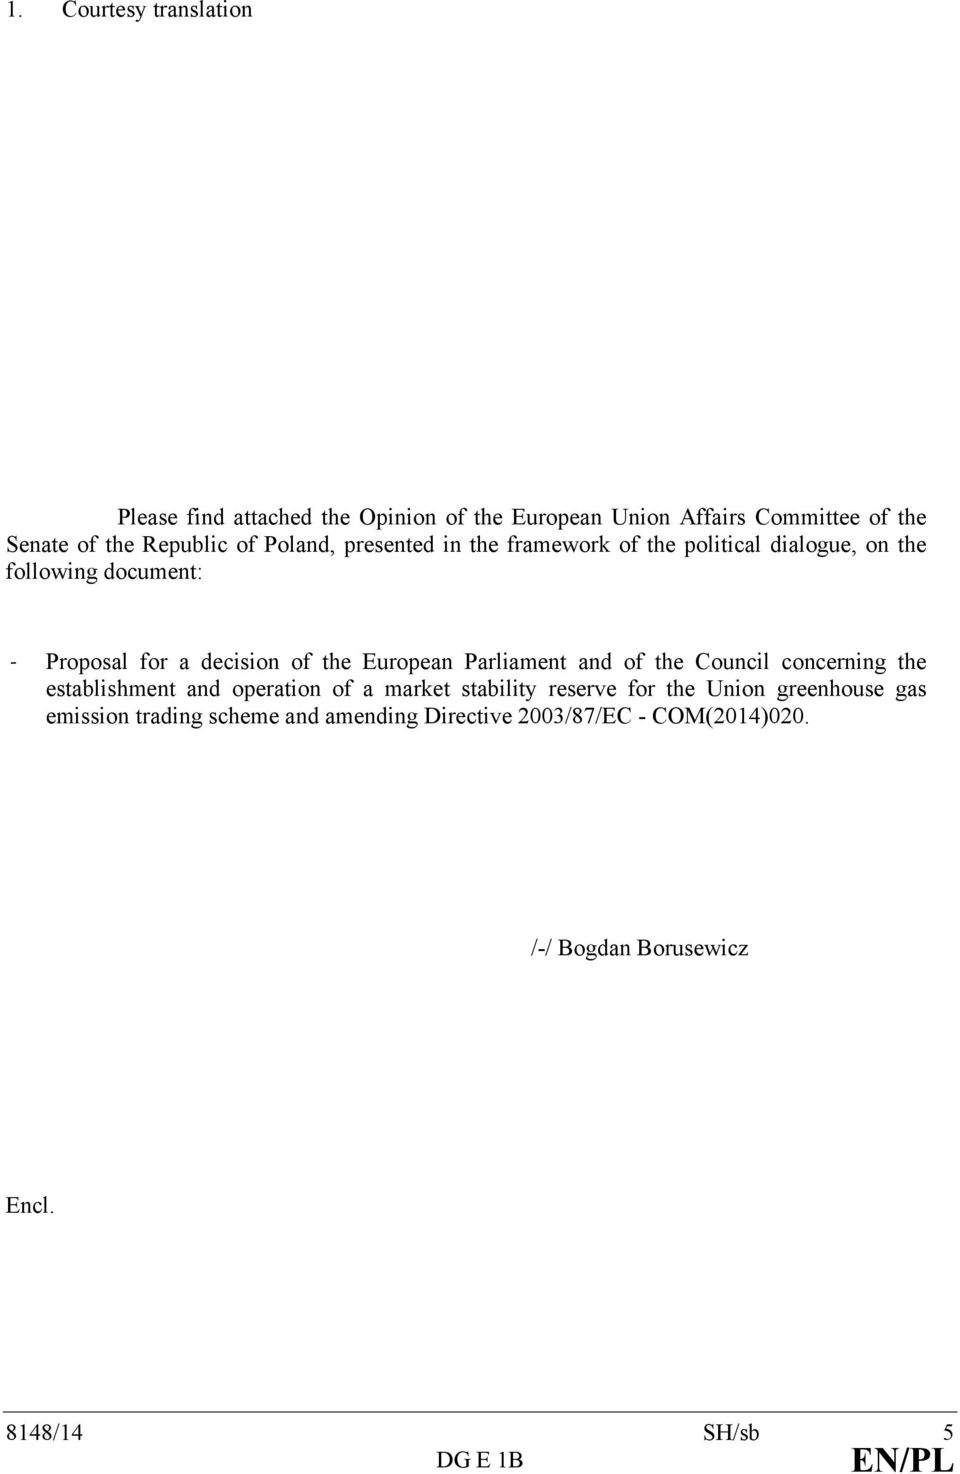 European Parliament and of the Council concerning the establishment and operation of a market stability reserve for the Union